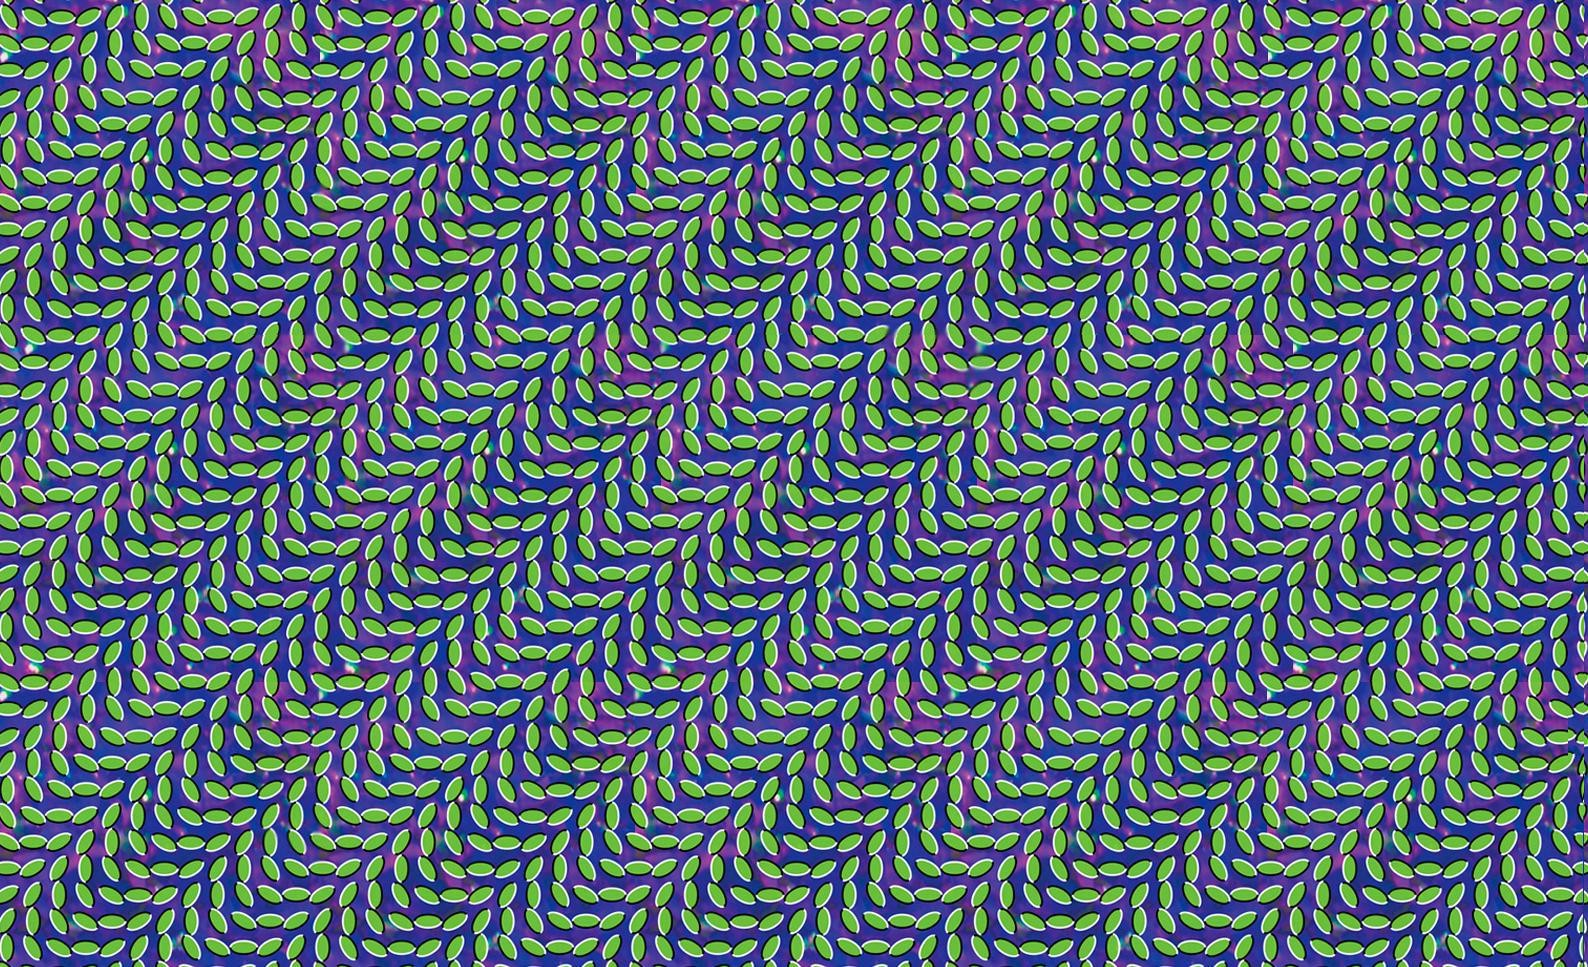 3d Illusion Wallpapers Hd Optical Illusion Pattern Abstract Leaves Animal